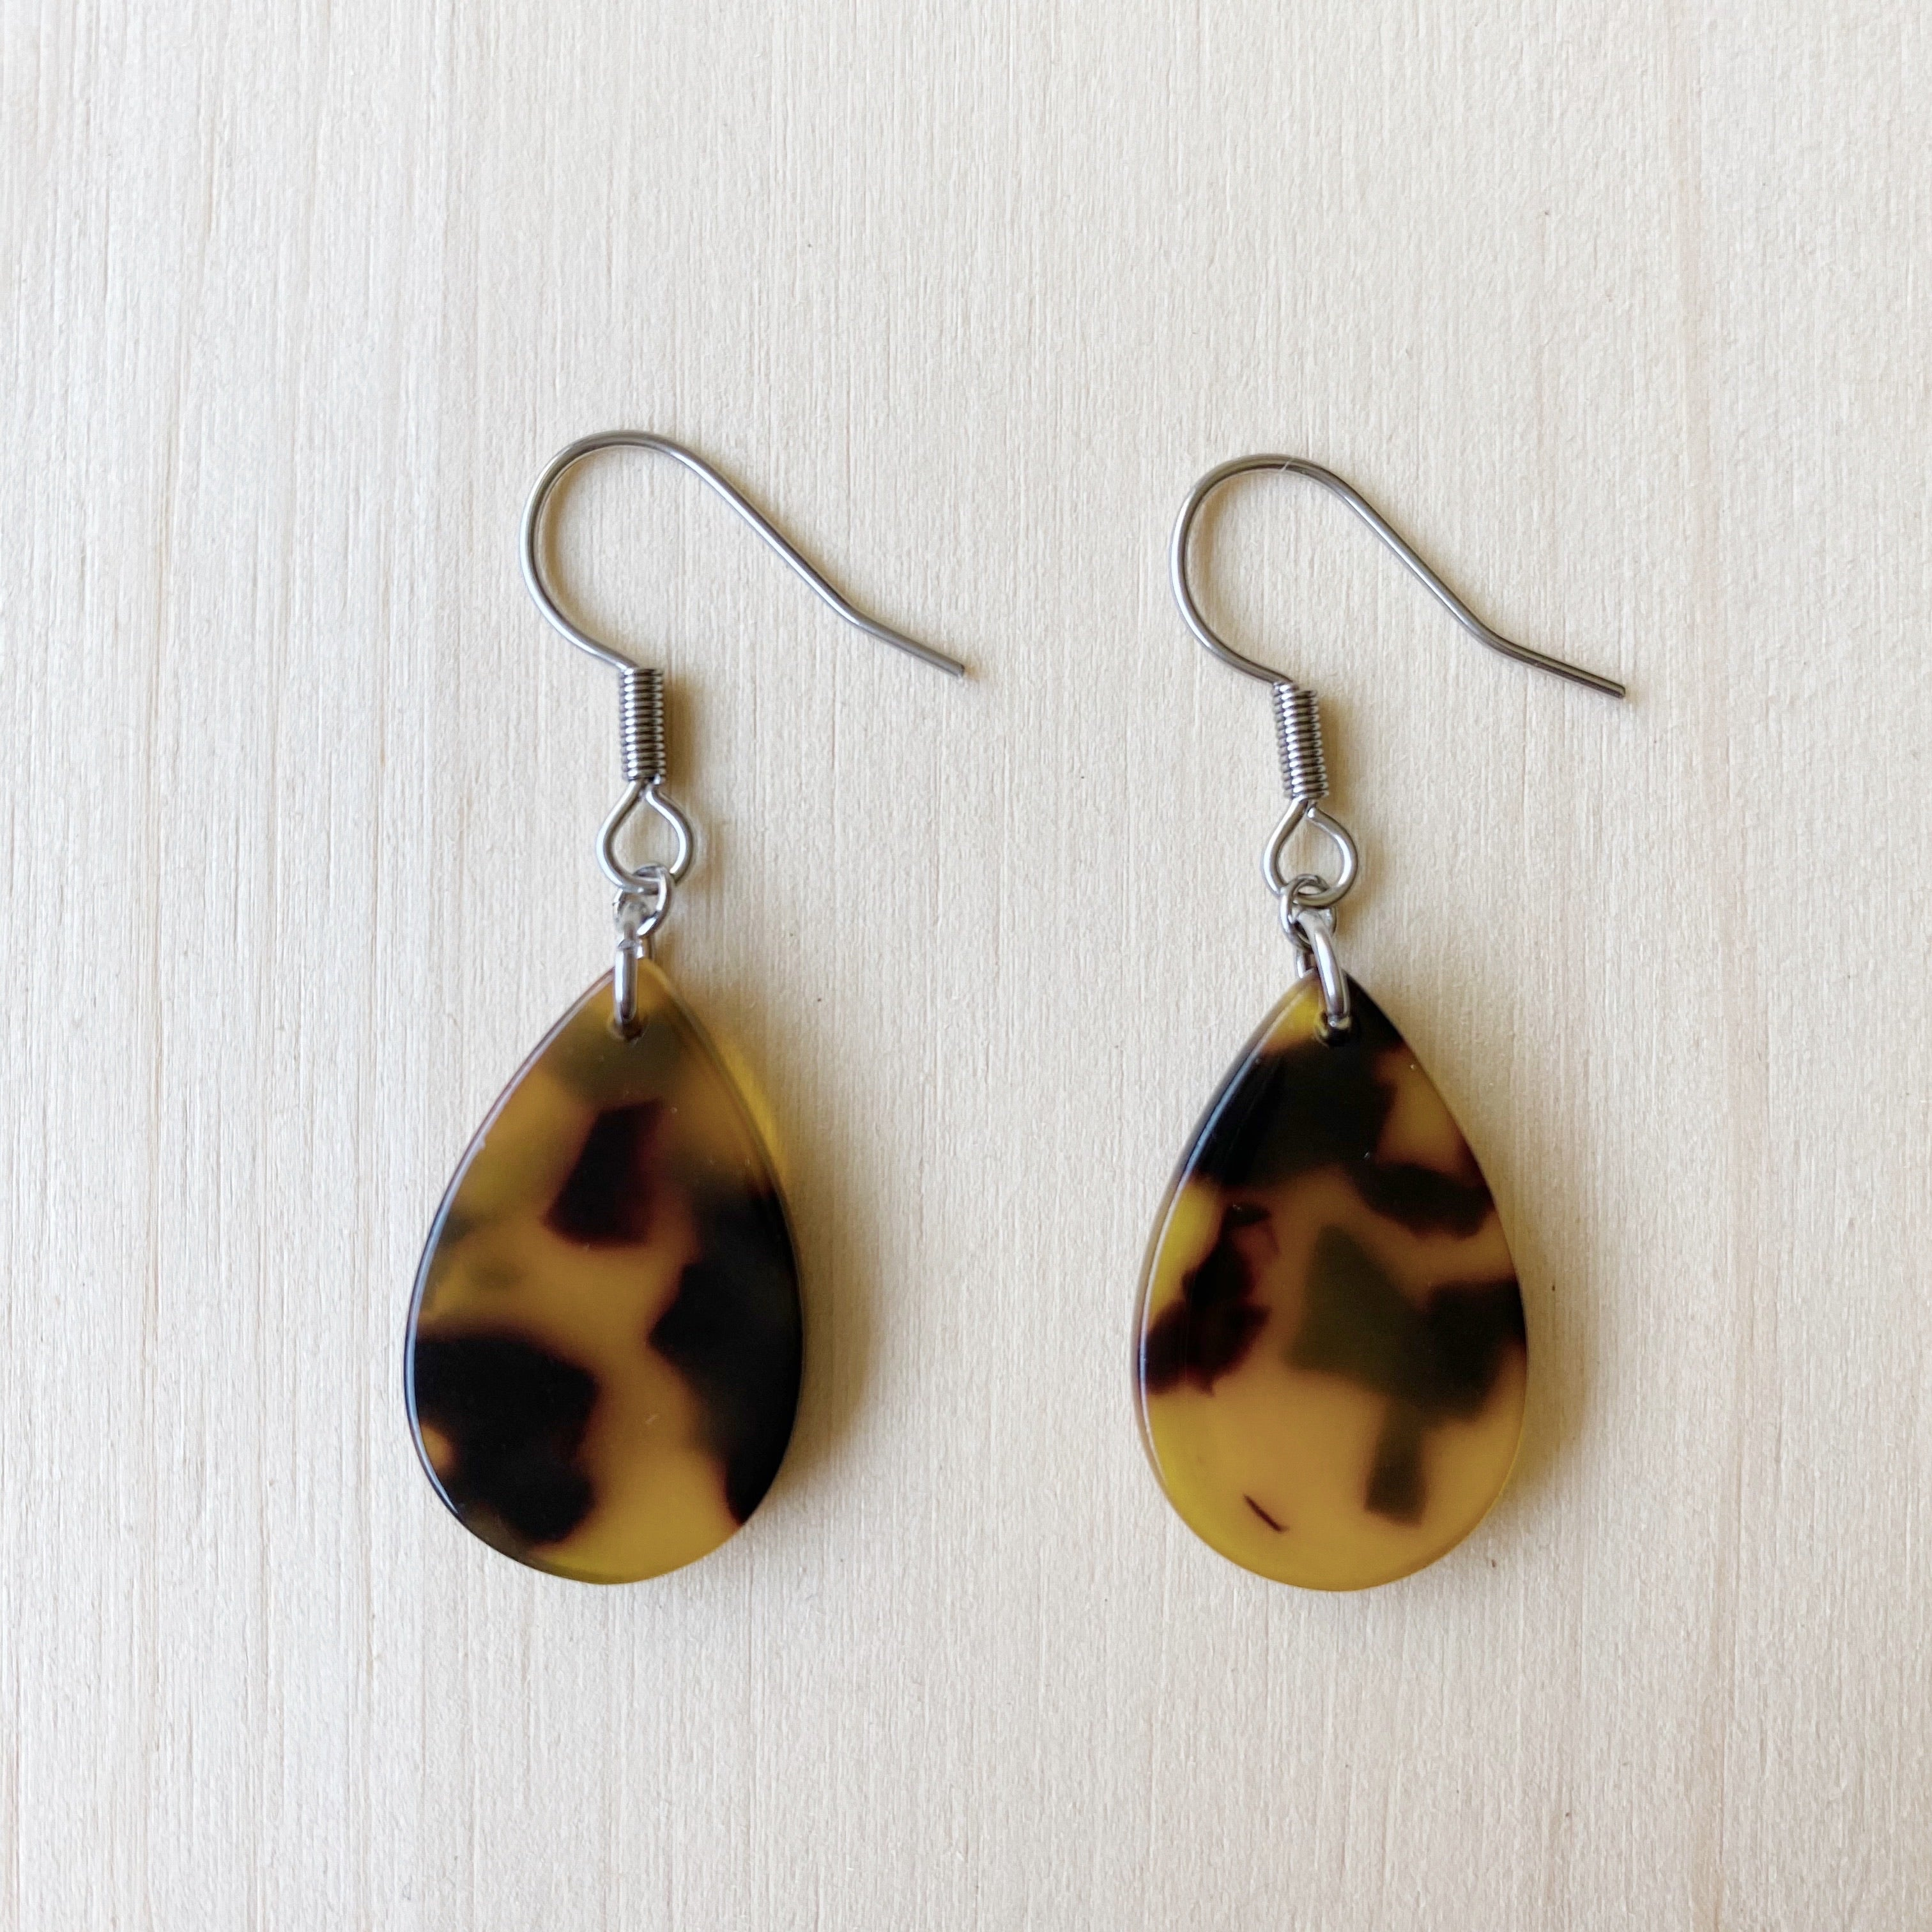 Tiny Teardrop Acetate Earrings - Tortoiseshell